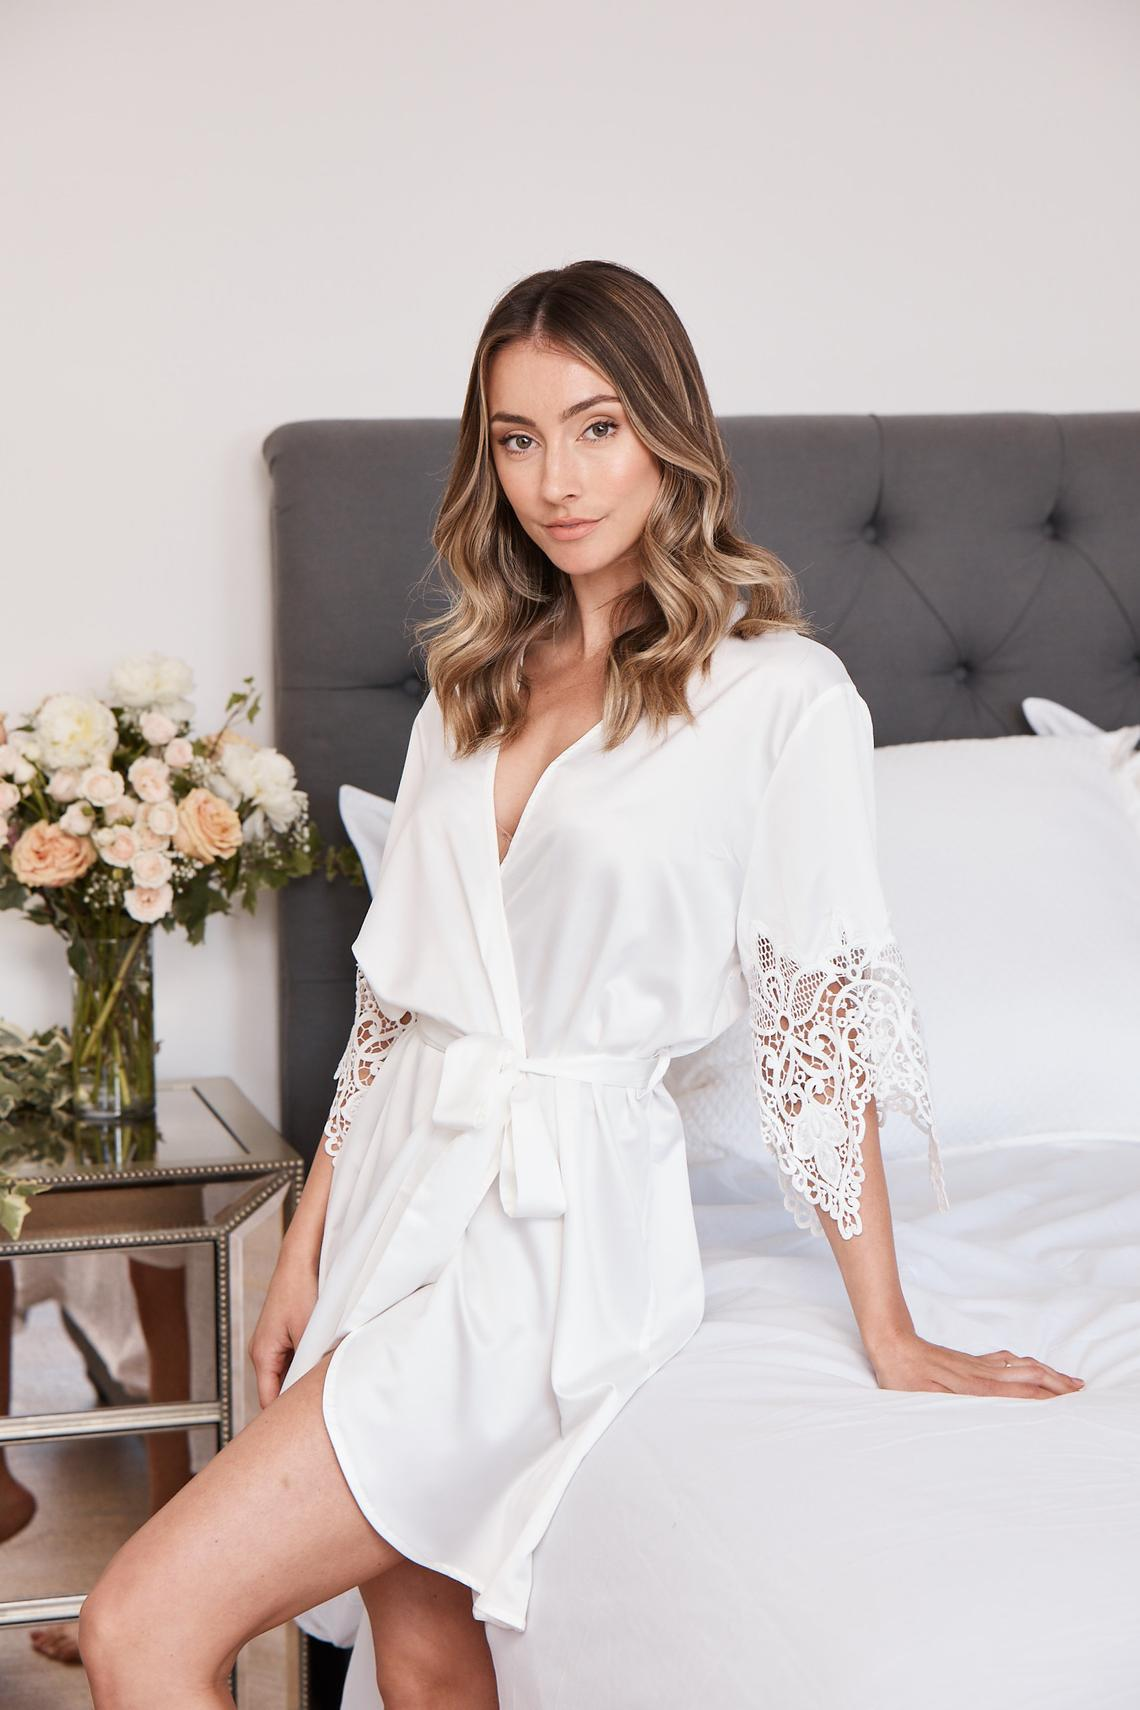 Bridesmaid Lace Robes Bridesmaid Gifts Bridal Party Robes.jpg